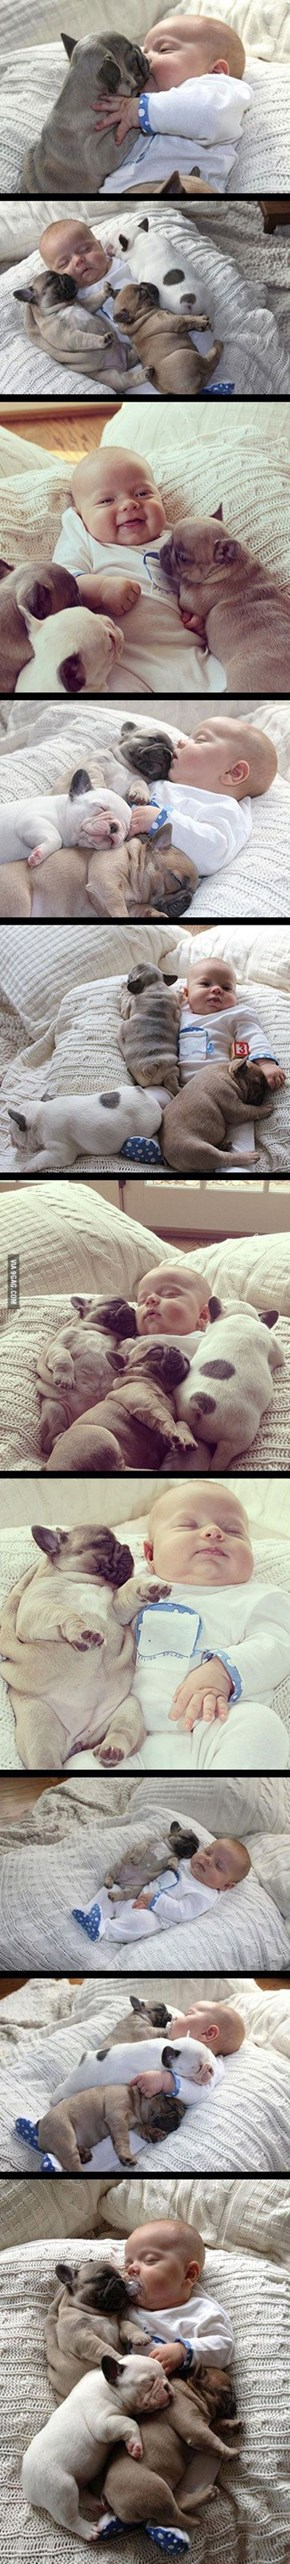 Babies and Puppies Kissing...Need I Say More?